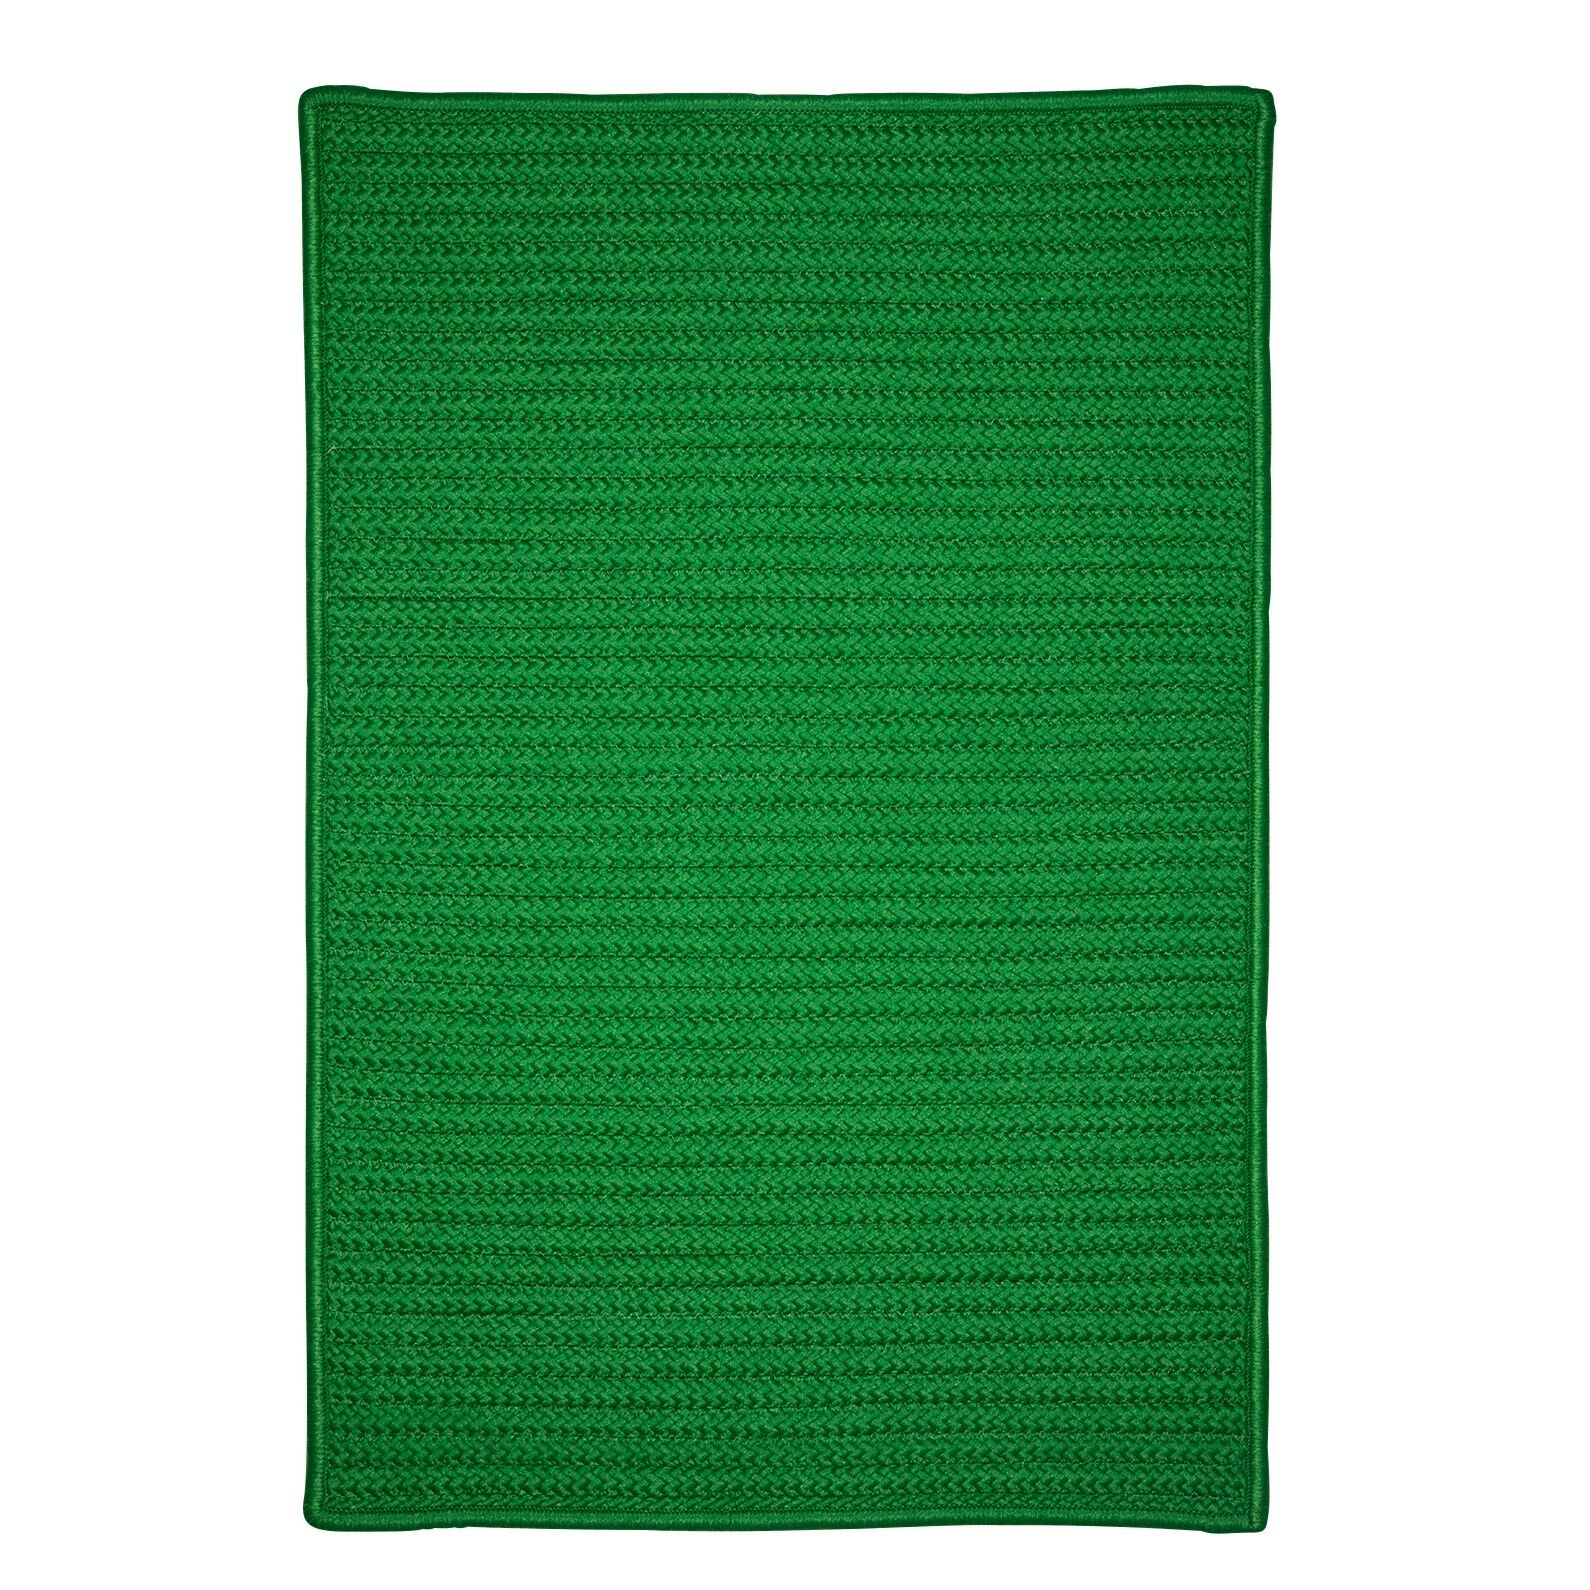 Glasgow Green Indoor/Outdoor Area Rug Rug Size: Square 10'